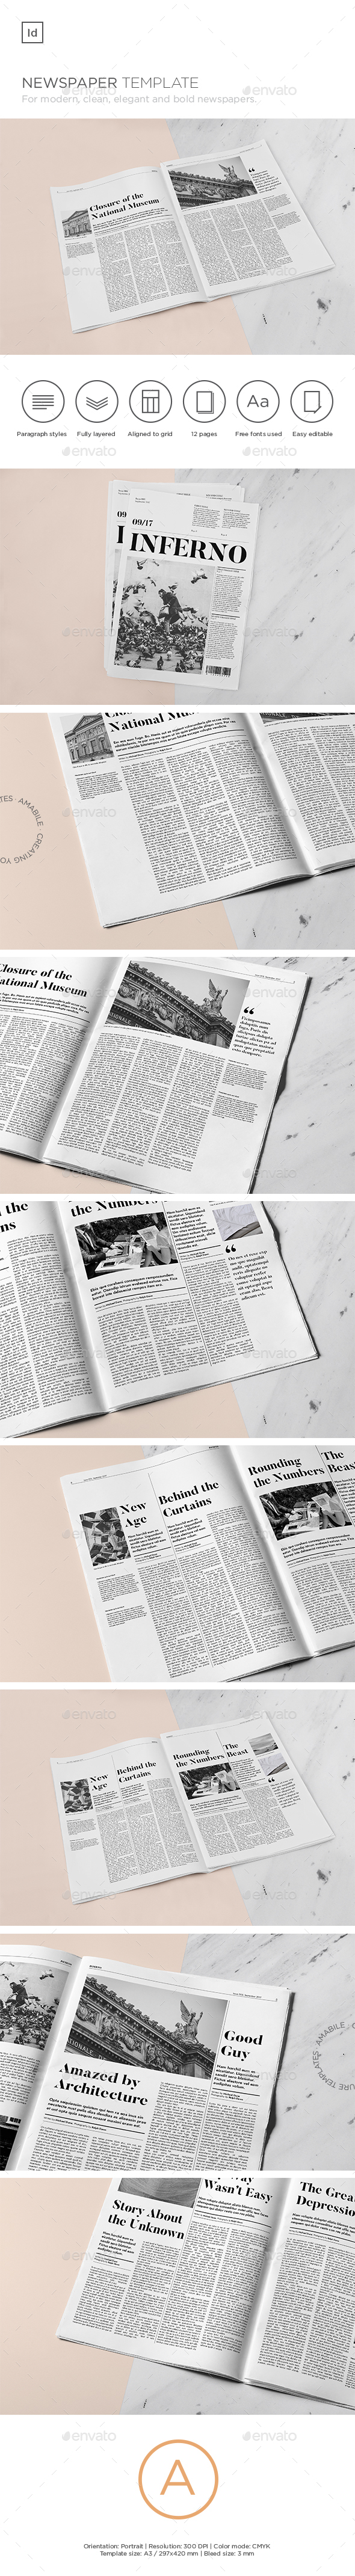 Inferno Newspaper Template - Newsletters Print Templates